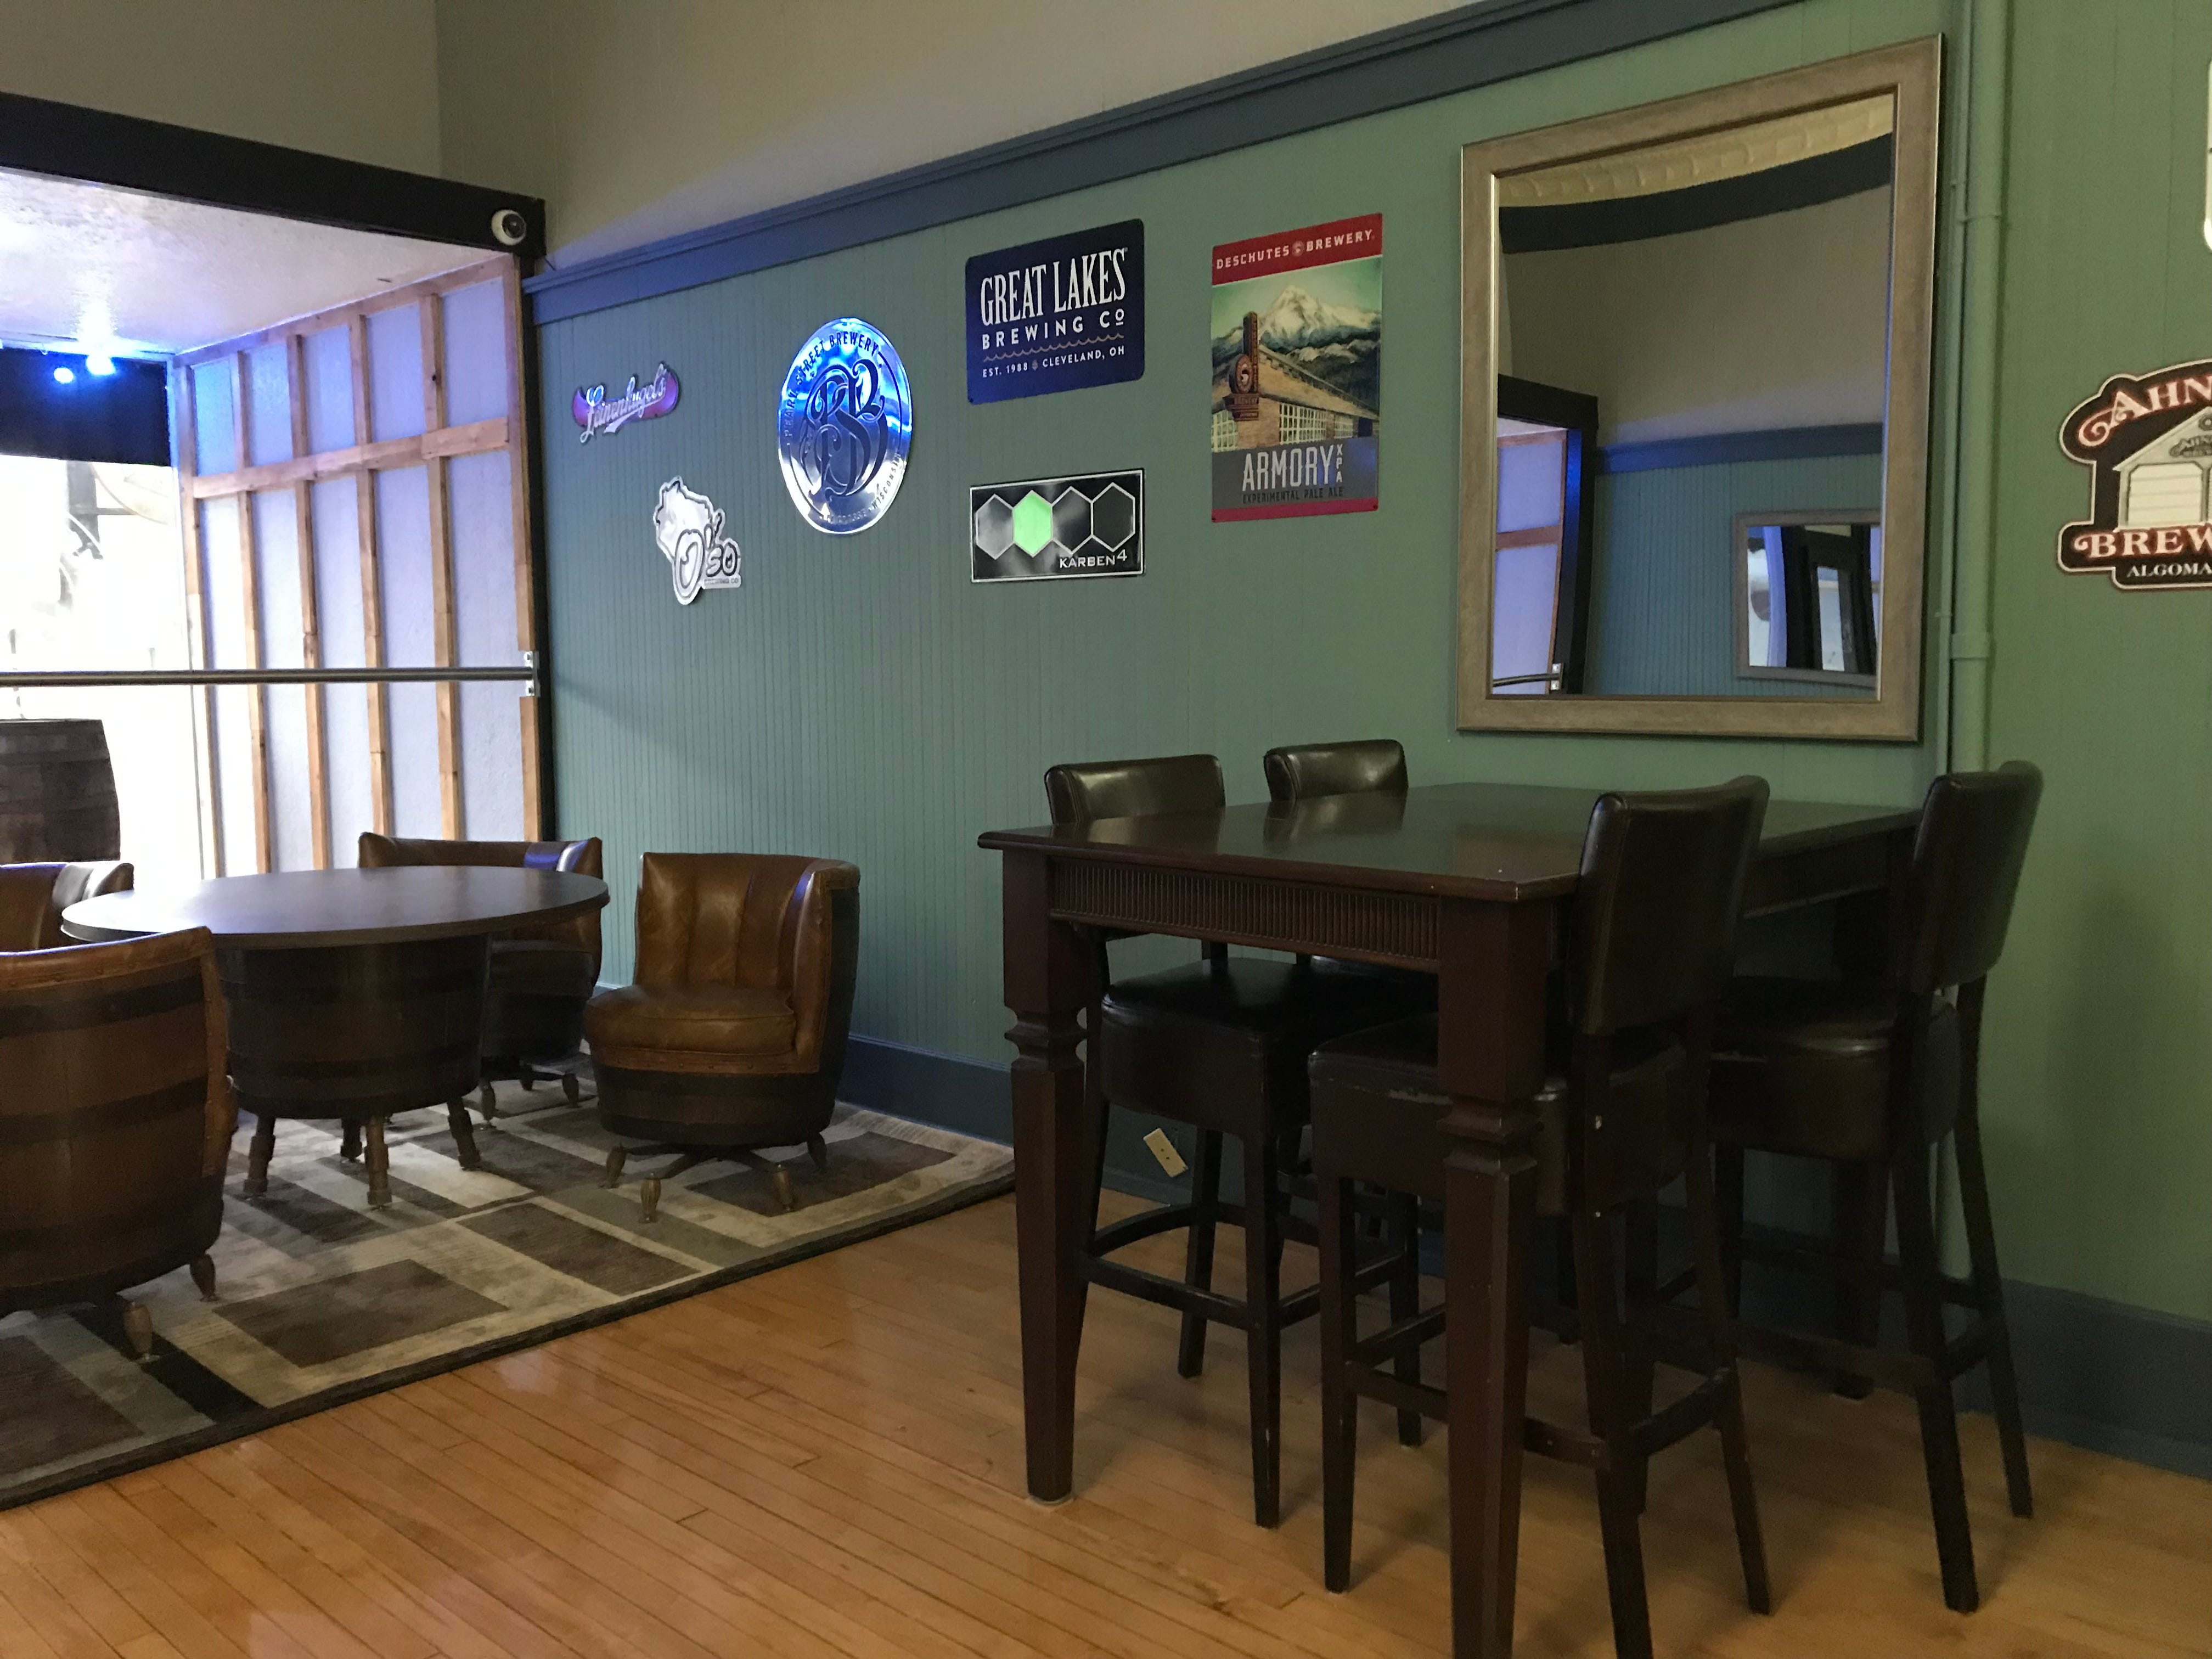 There are various seating options at B's Tap House for people to relax and have conversations.